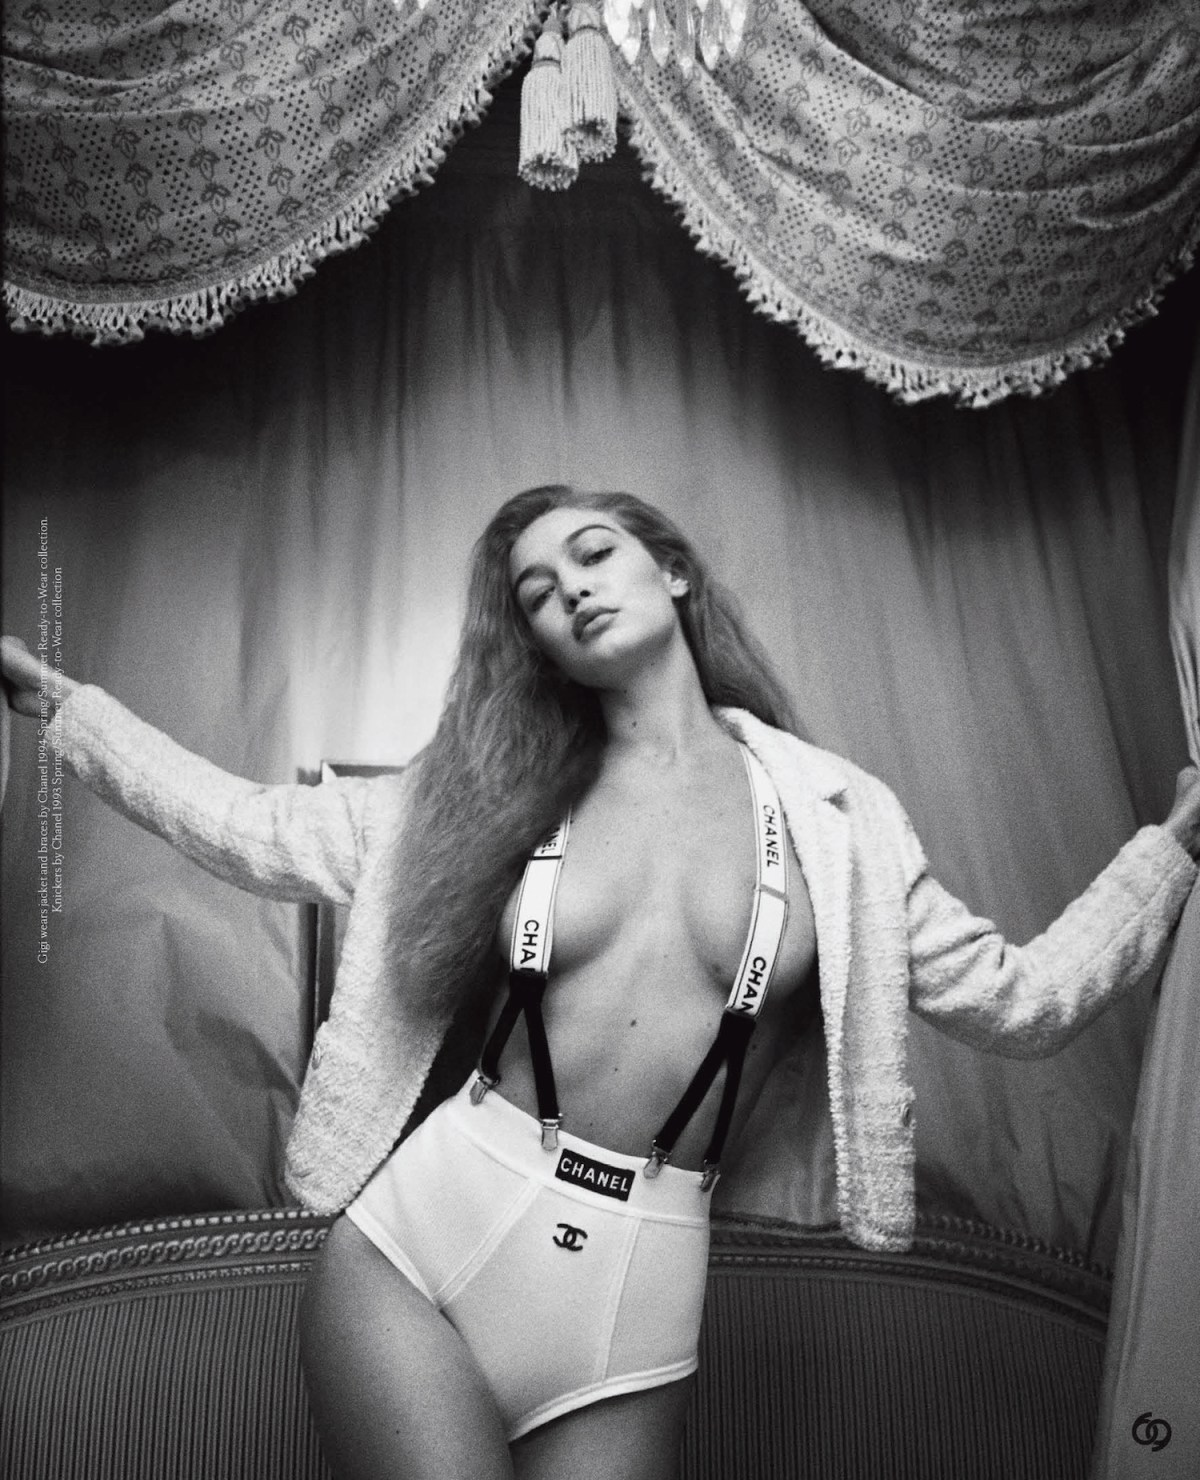 Gigi Hadid by Cass Bird for Chaos SixtyNine